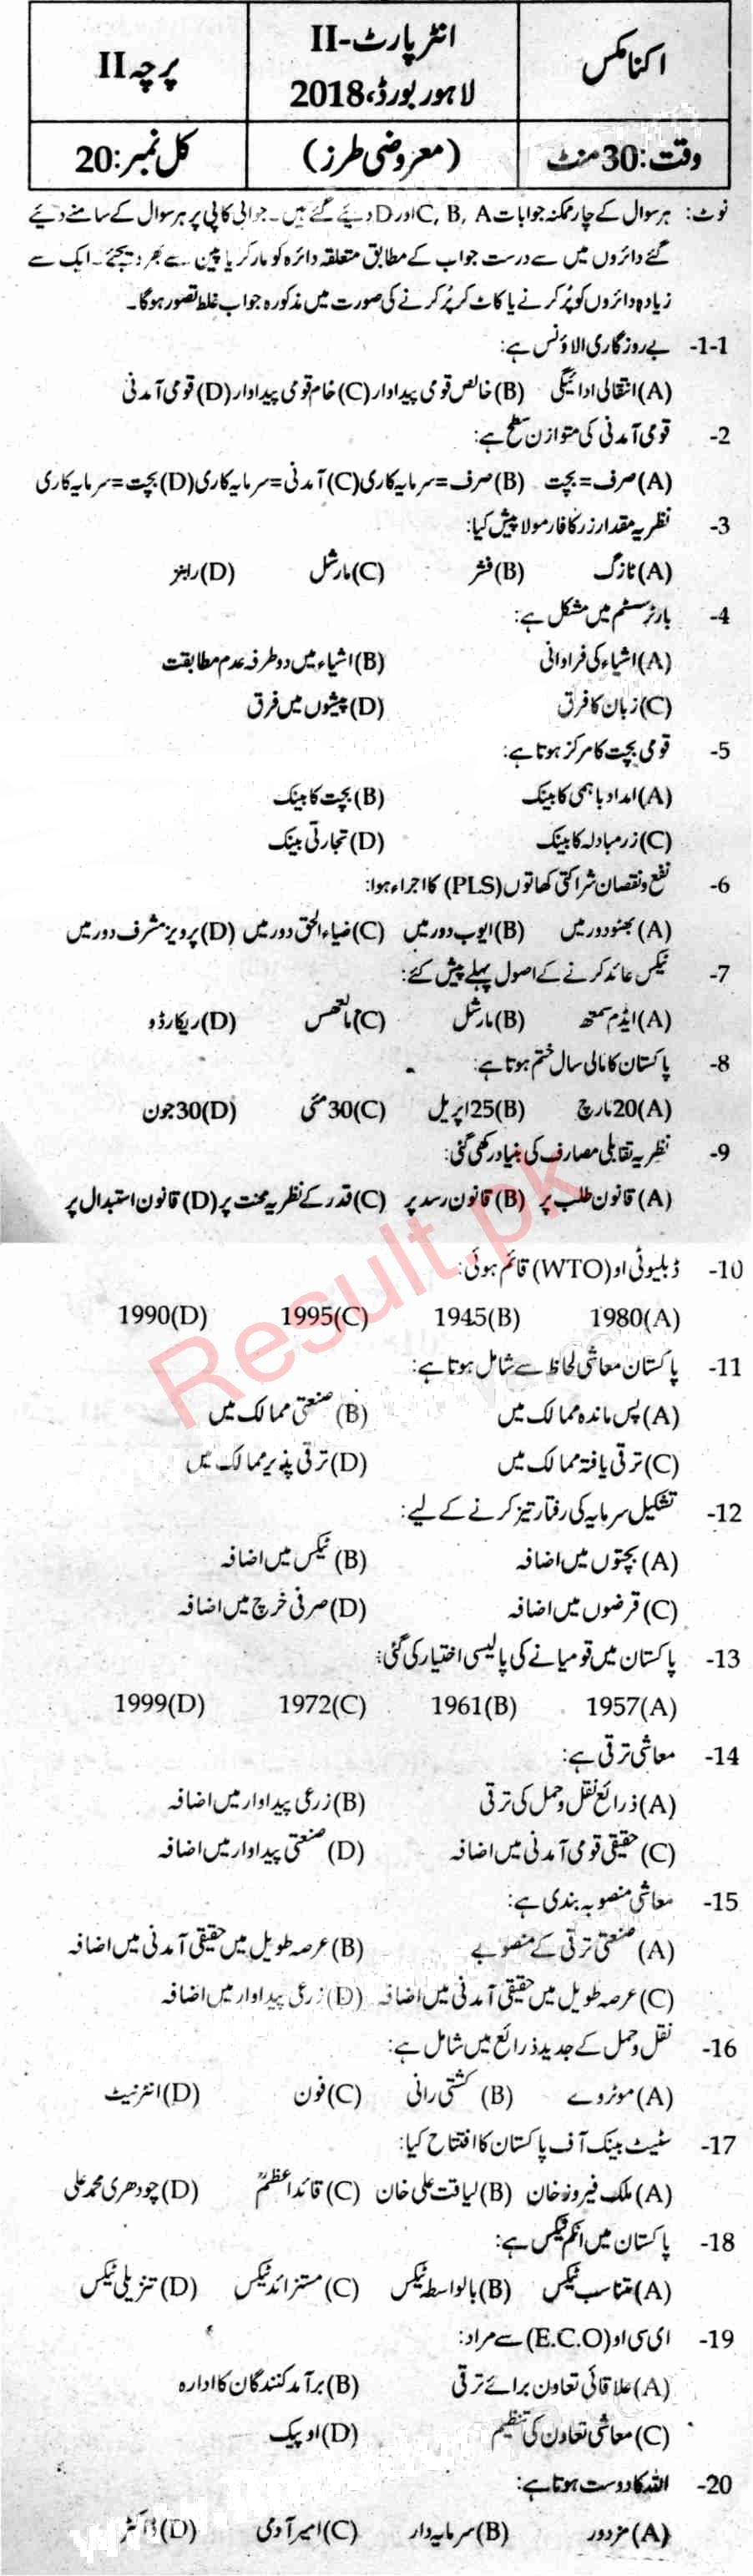 BISE Lahore Board Past Papers 2019 Inter Part 1 2, FA, HSSC